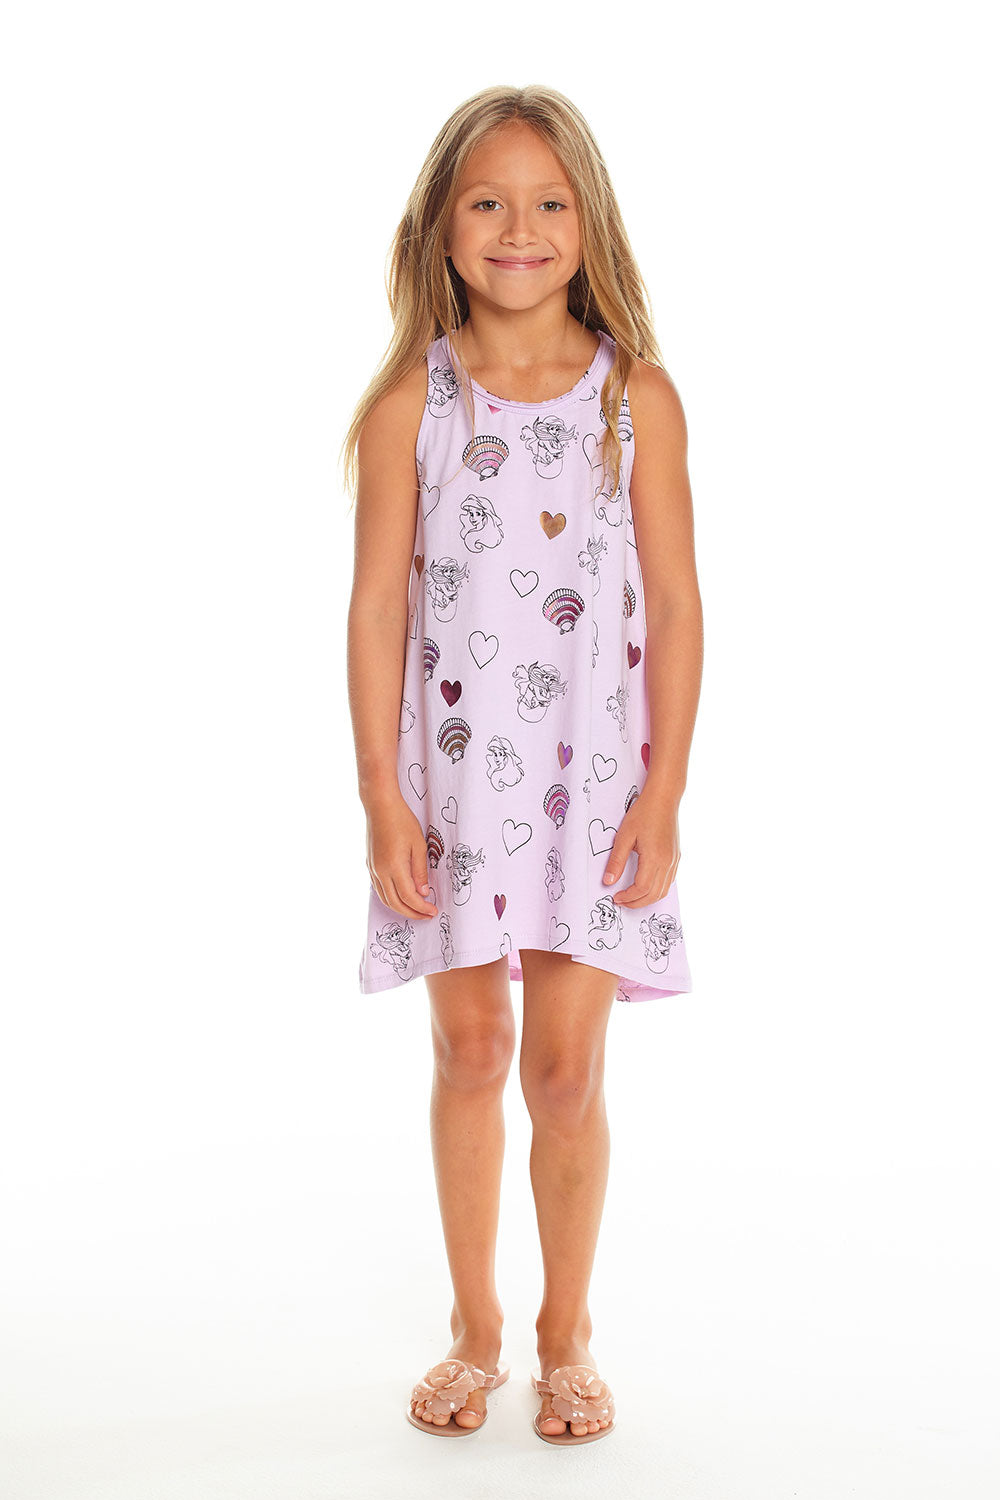 Disney's The Little Mermaid - Mermaid Hearts & Shells GIRLS chaserbrand4.myshopify.com